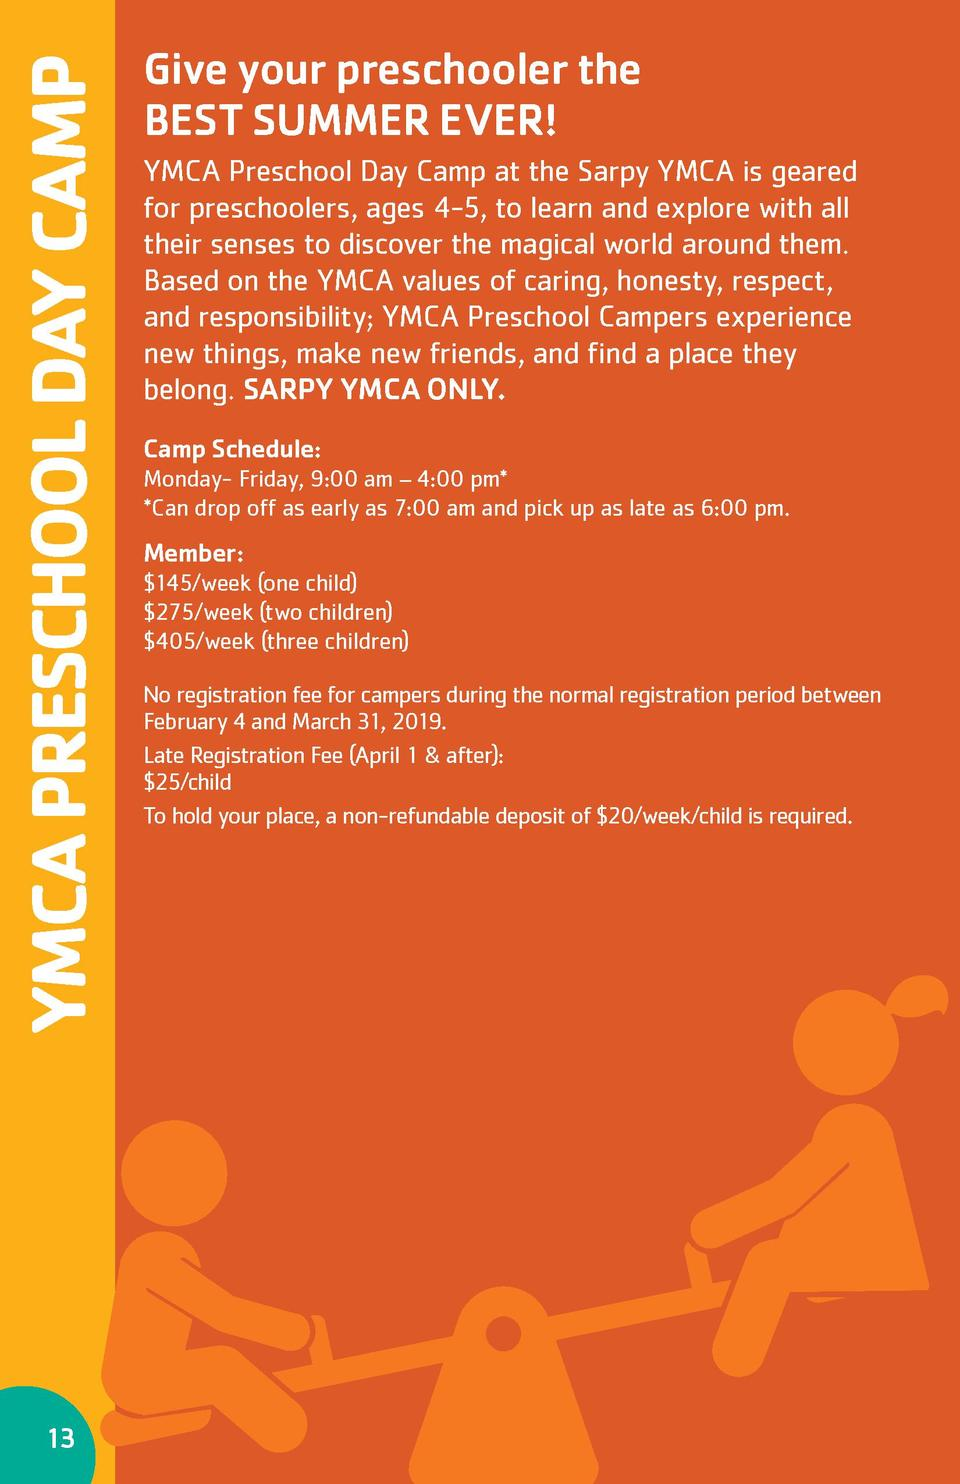 YMCA PRESCHOOL DAY CAMP 13  Give your preschooler the BEST SUMMER EVER  YMCA Preschool Day Camp at the Sarpy YMCA is geare...